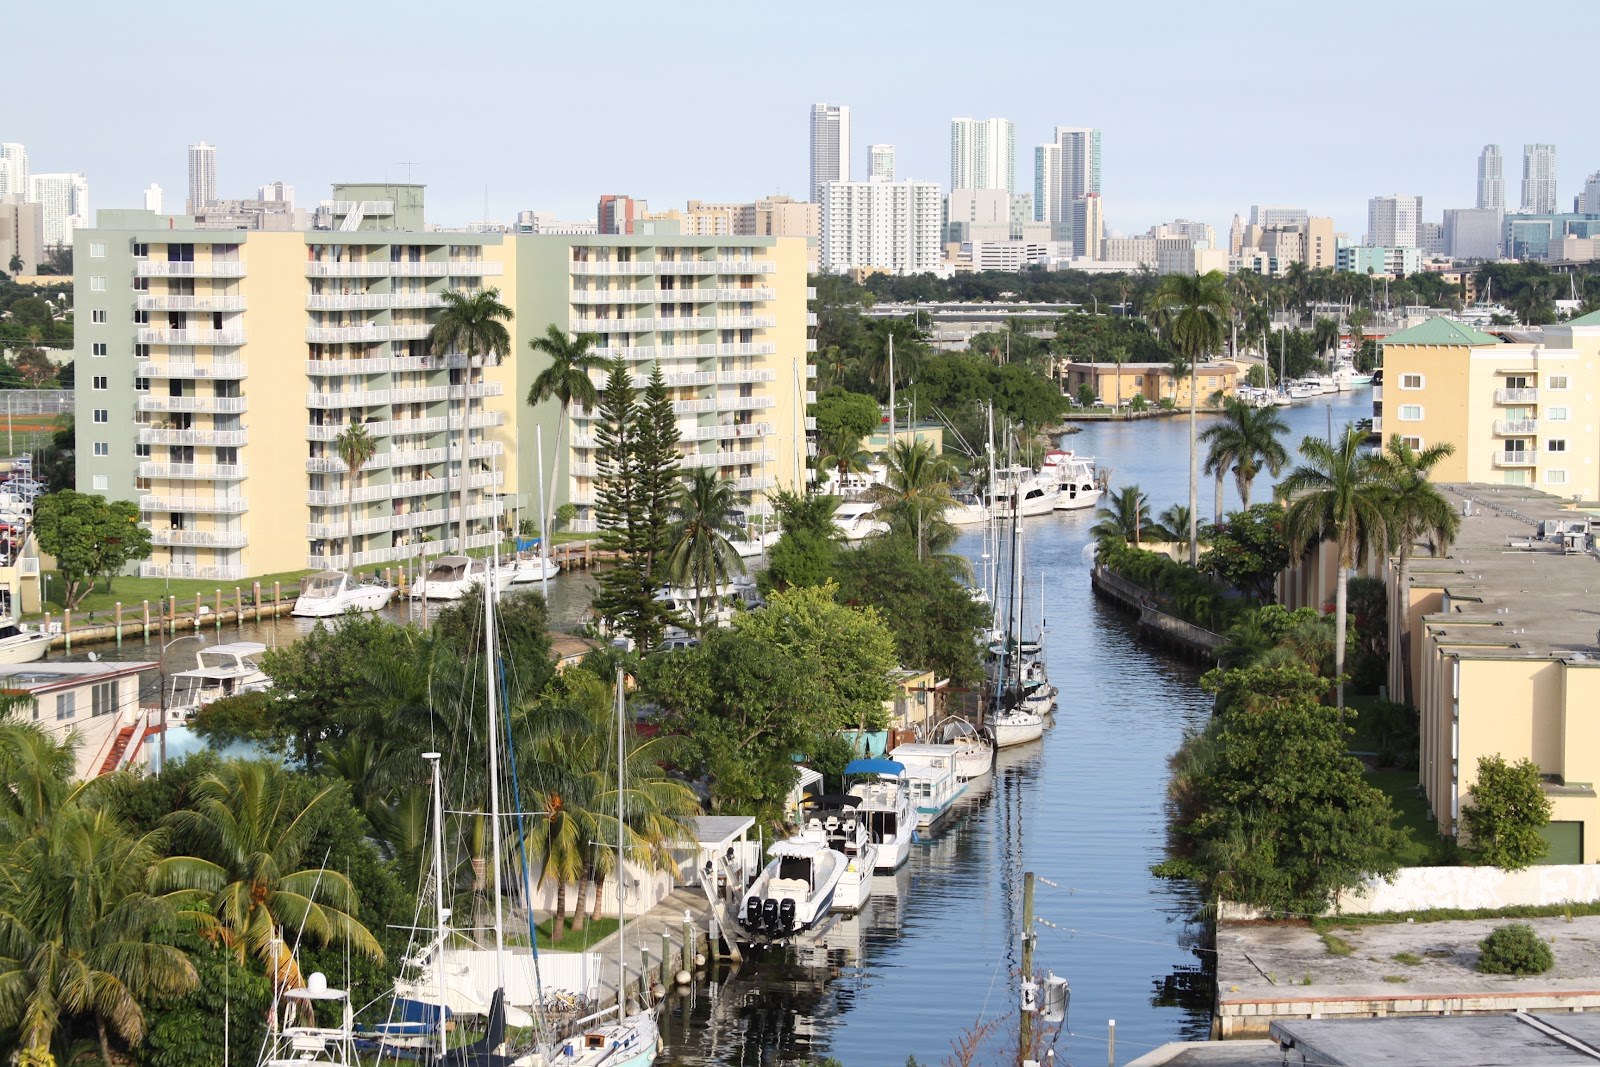 South Florida Apartments and Home Rentals: The Elite ...